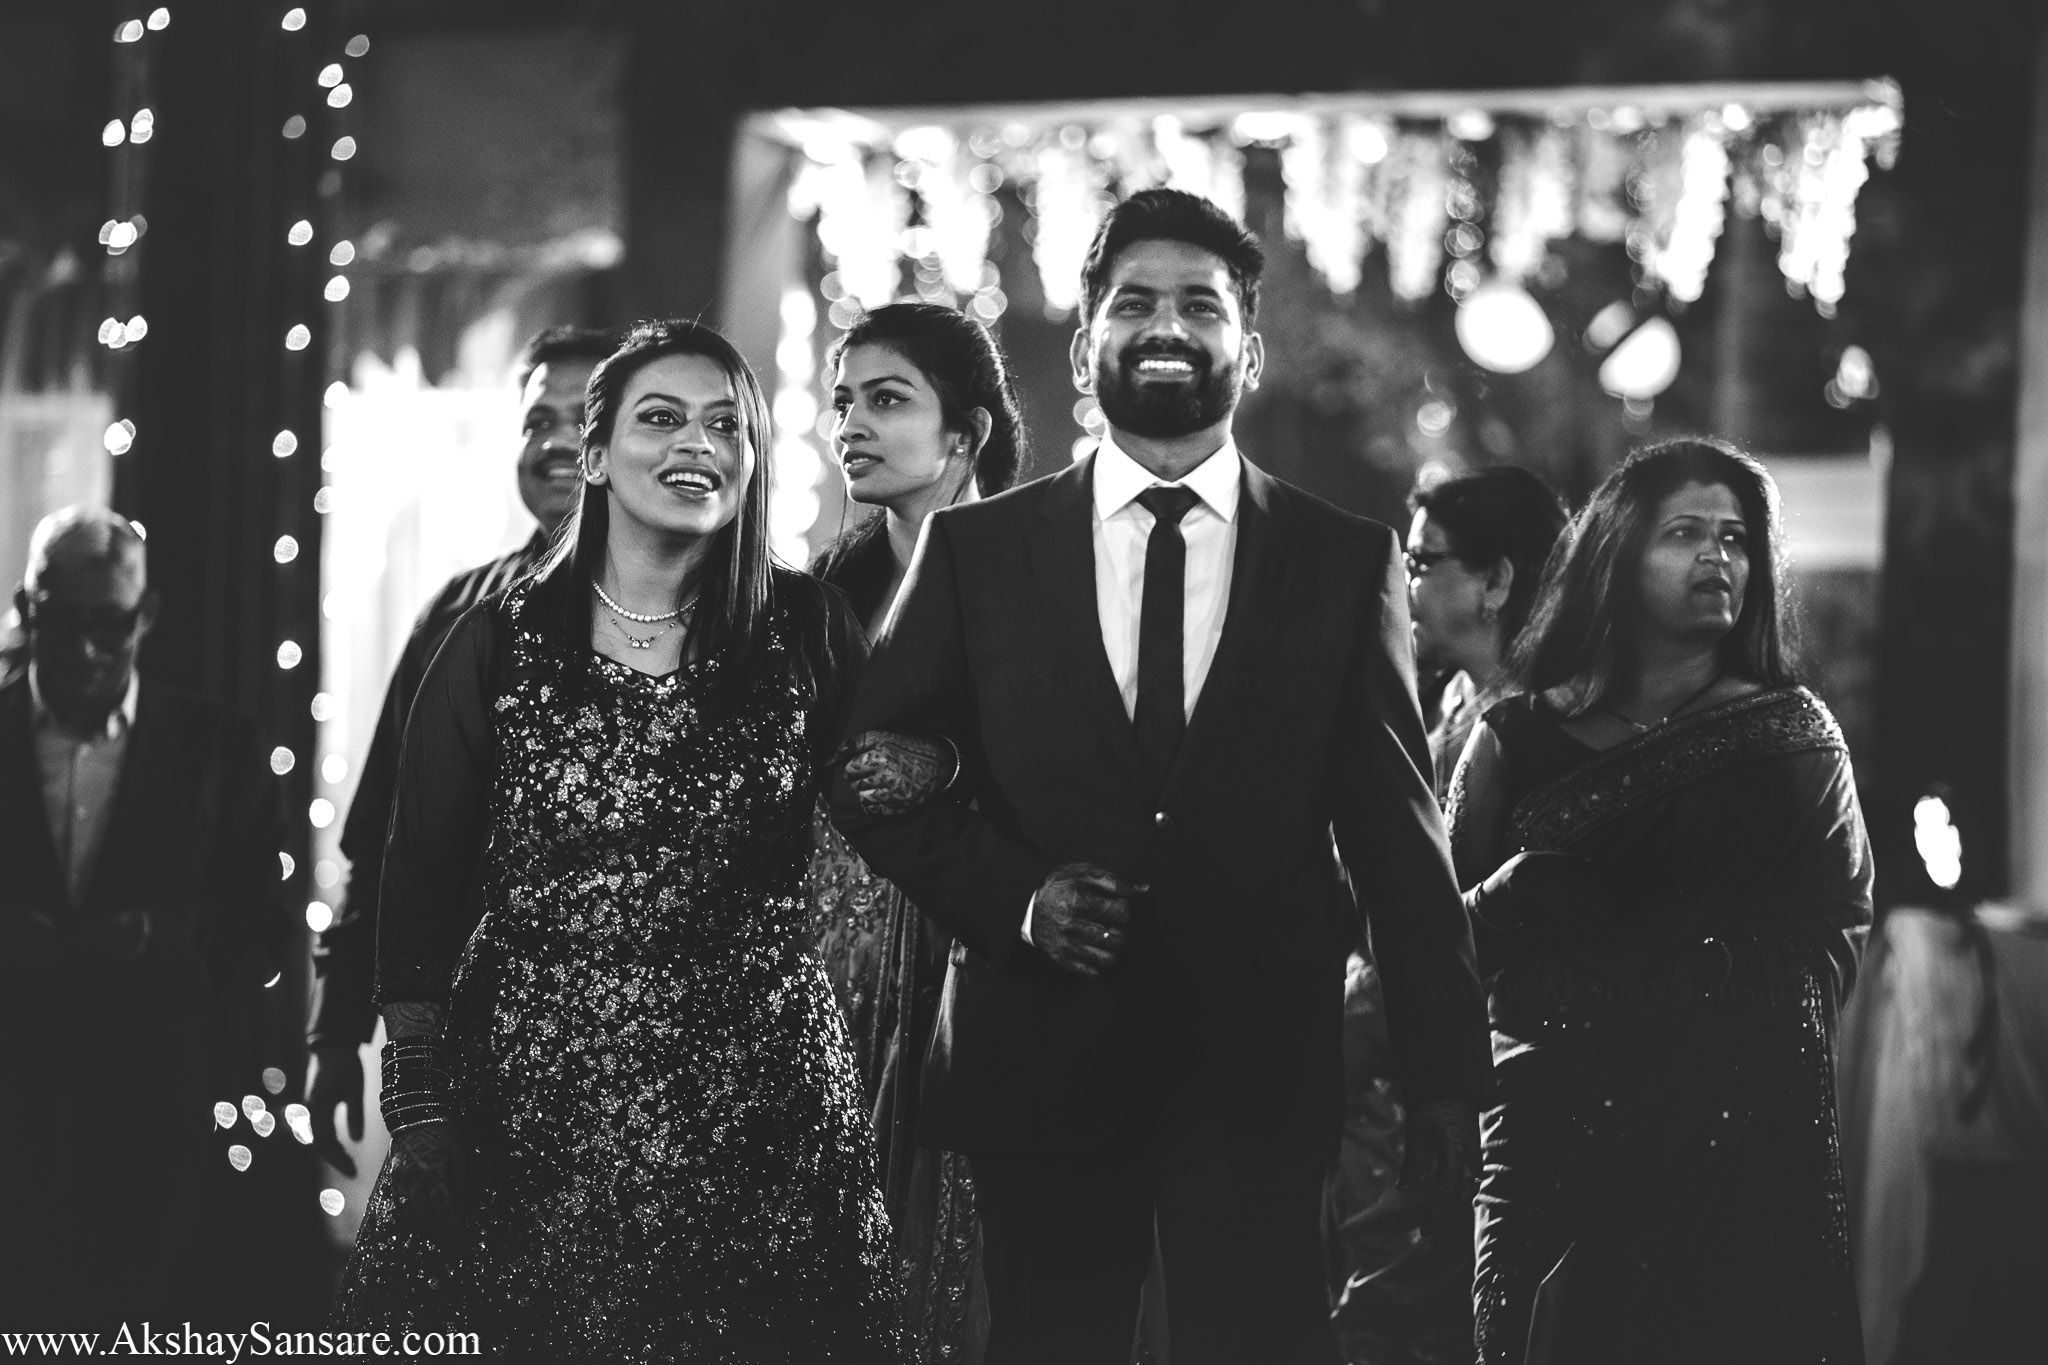 Ajay & Devika Akshay Sansare Photography Best Candid wedding photographer in mumbai india28.jpg